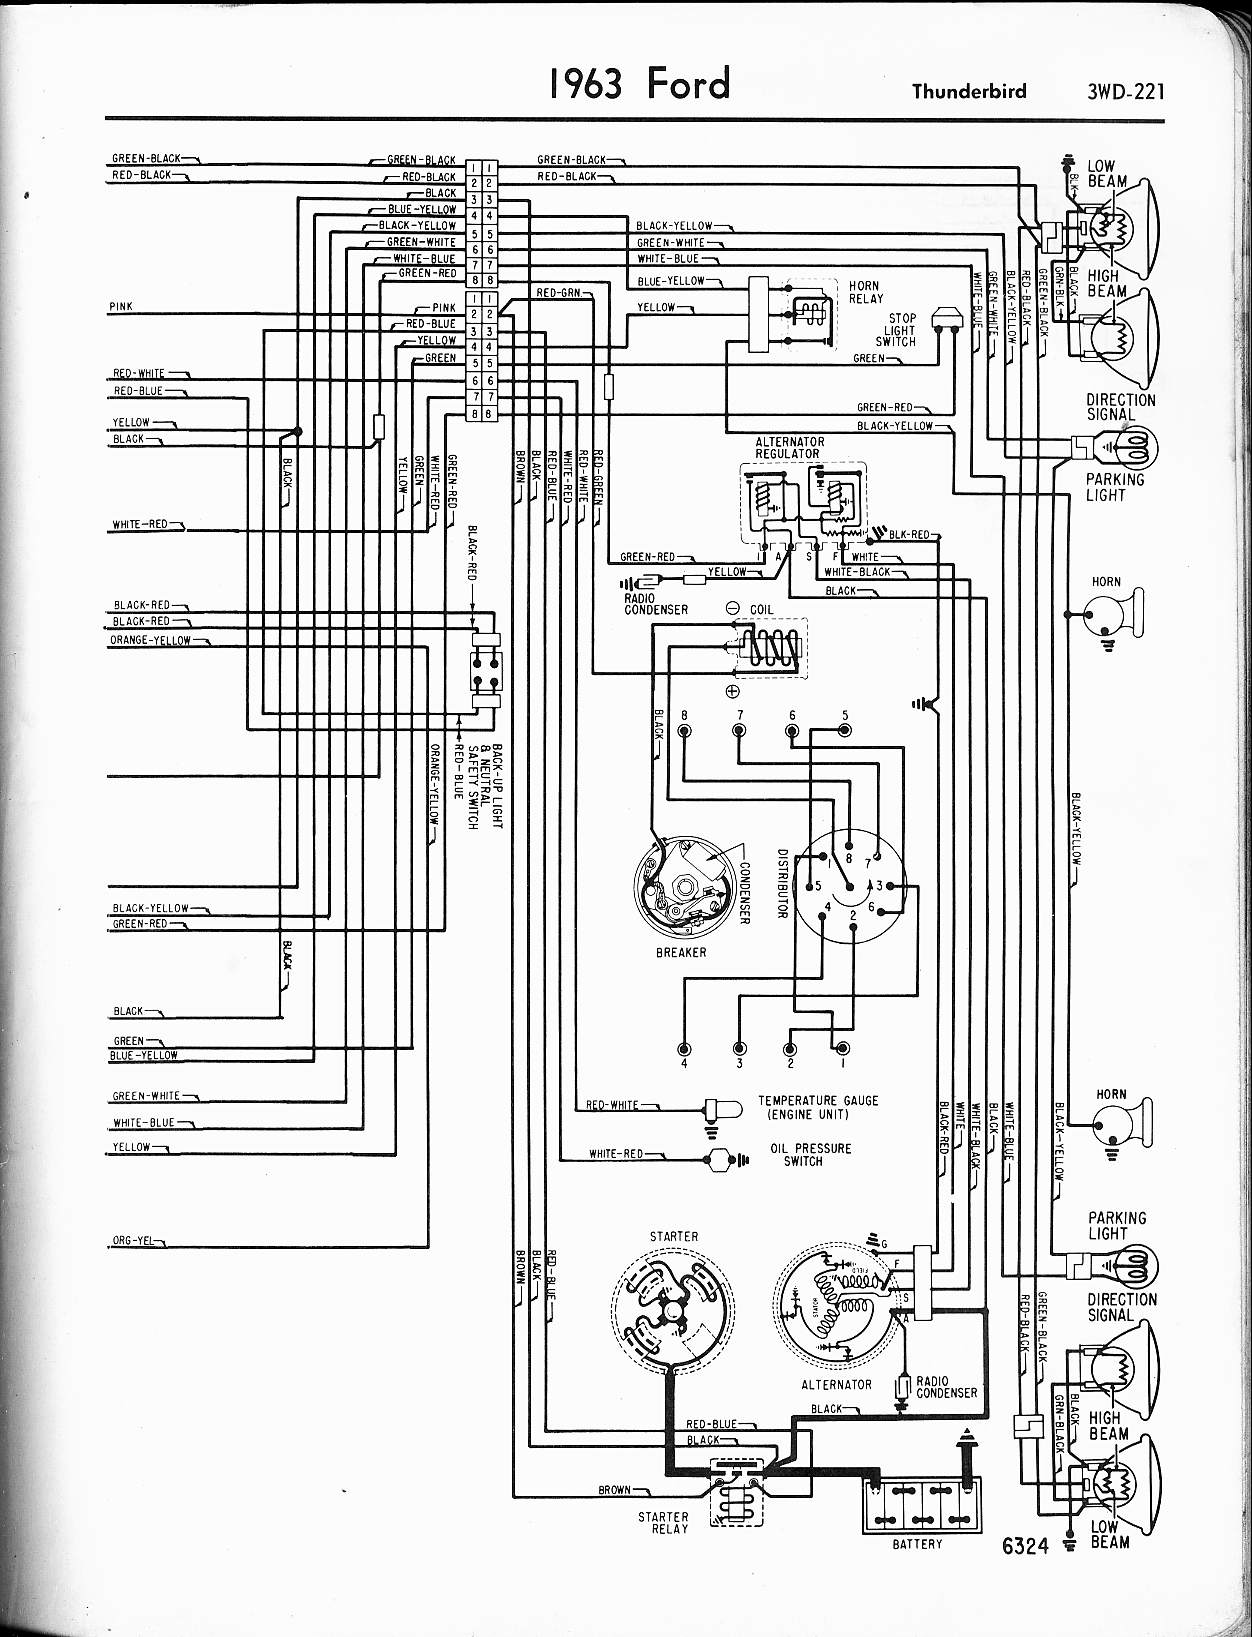 MWire5765 221 57 65 ford wiring diagrams 1963 ford falcon wiring harness at gsmx.co